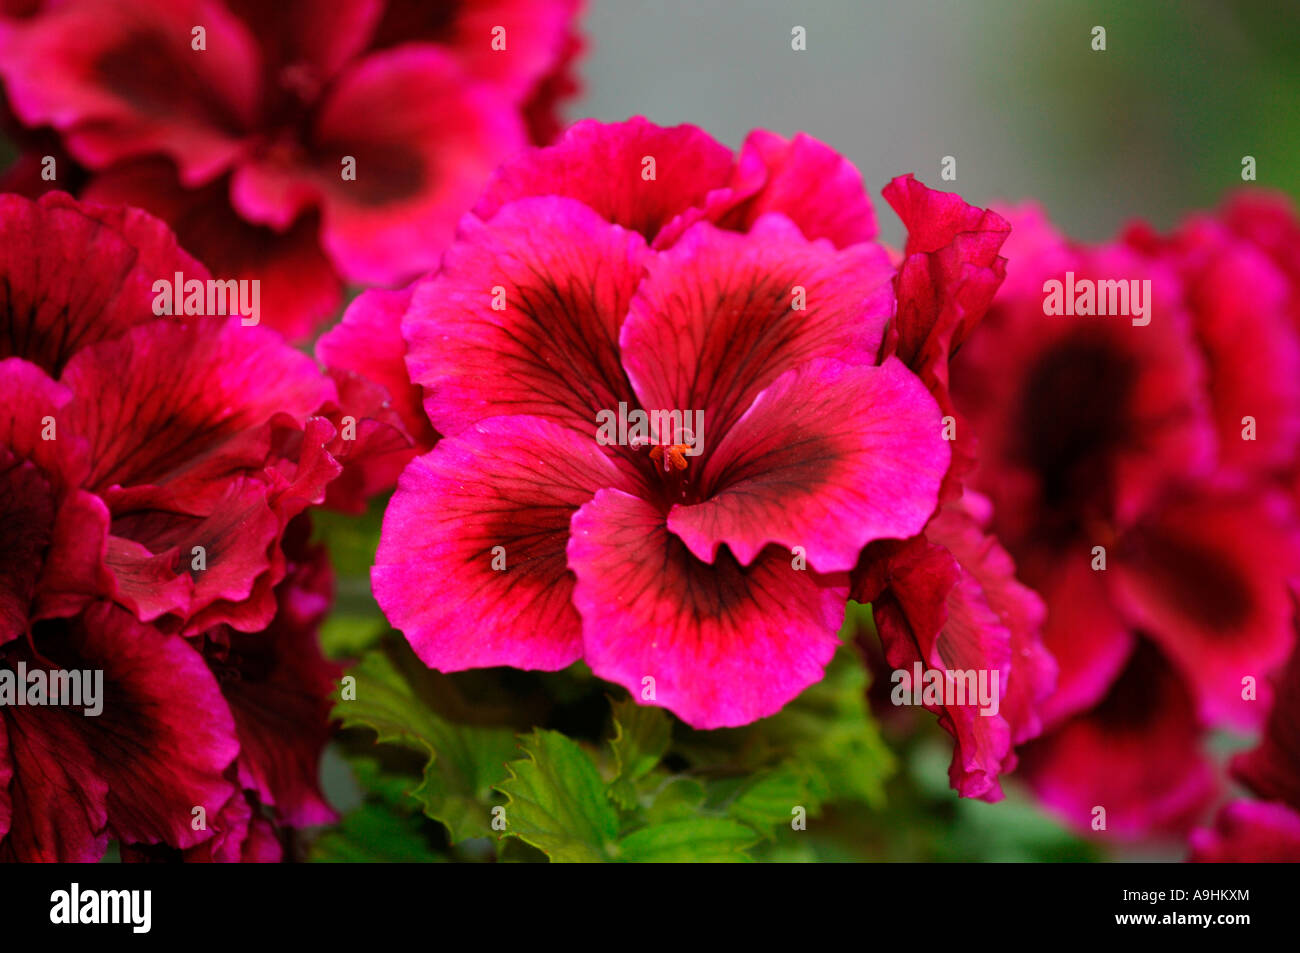 Natural Images Flowers